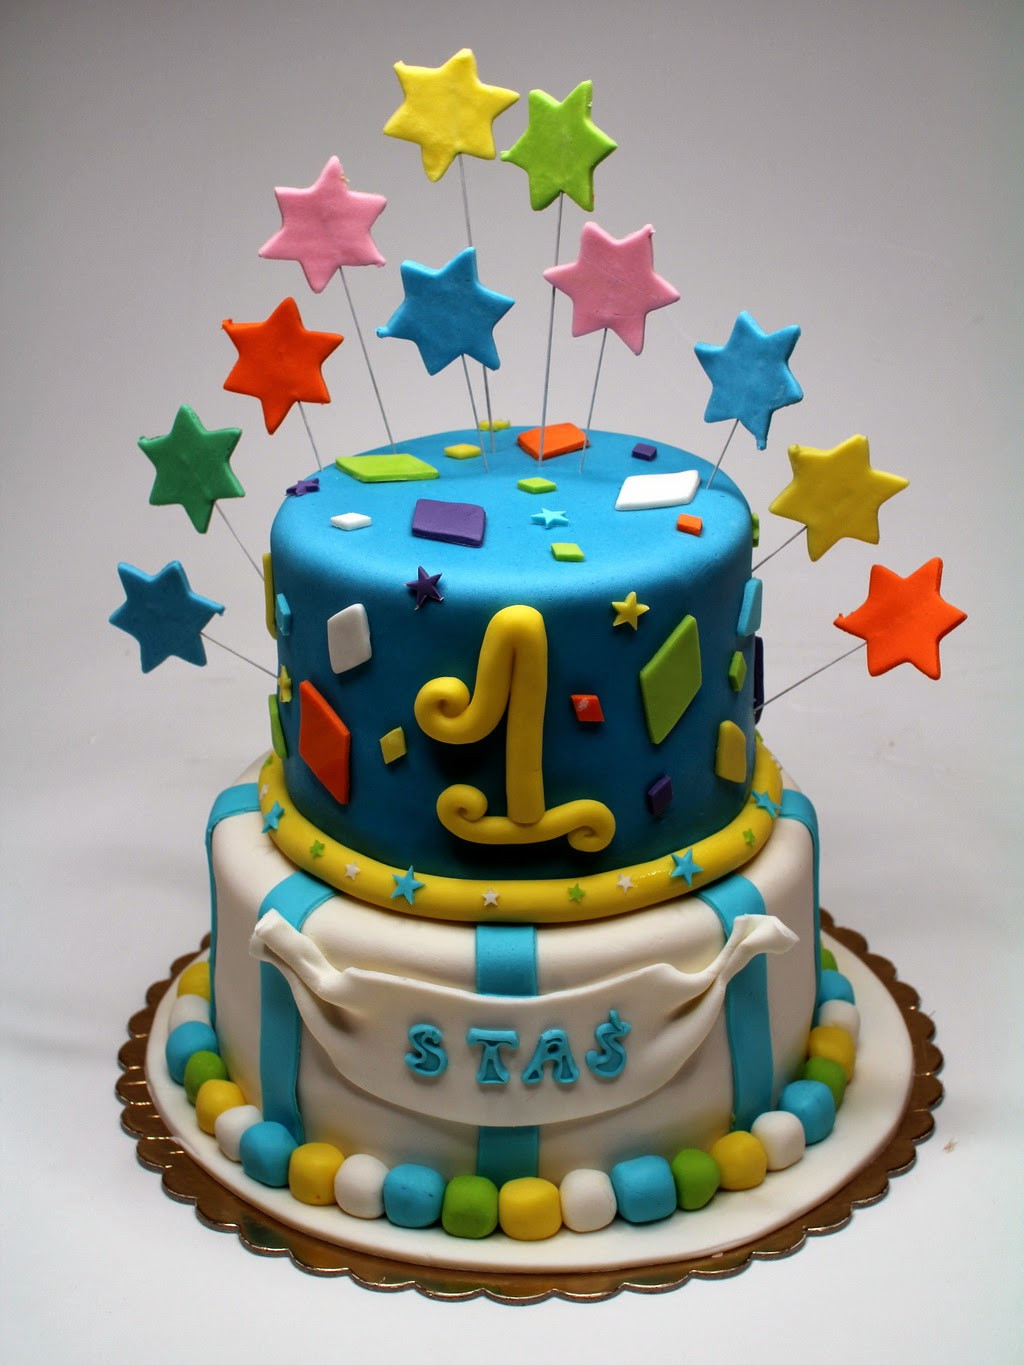 Best ideas about Kids Birthday Cake . Save or Pin Best Birthday Cakes in London PinkCakeLand Now.